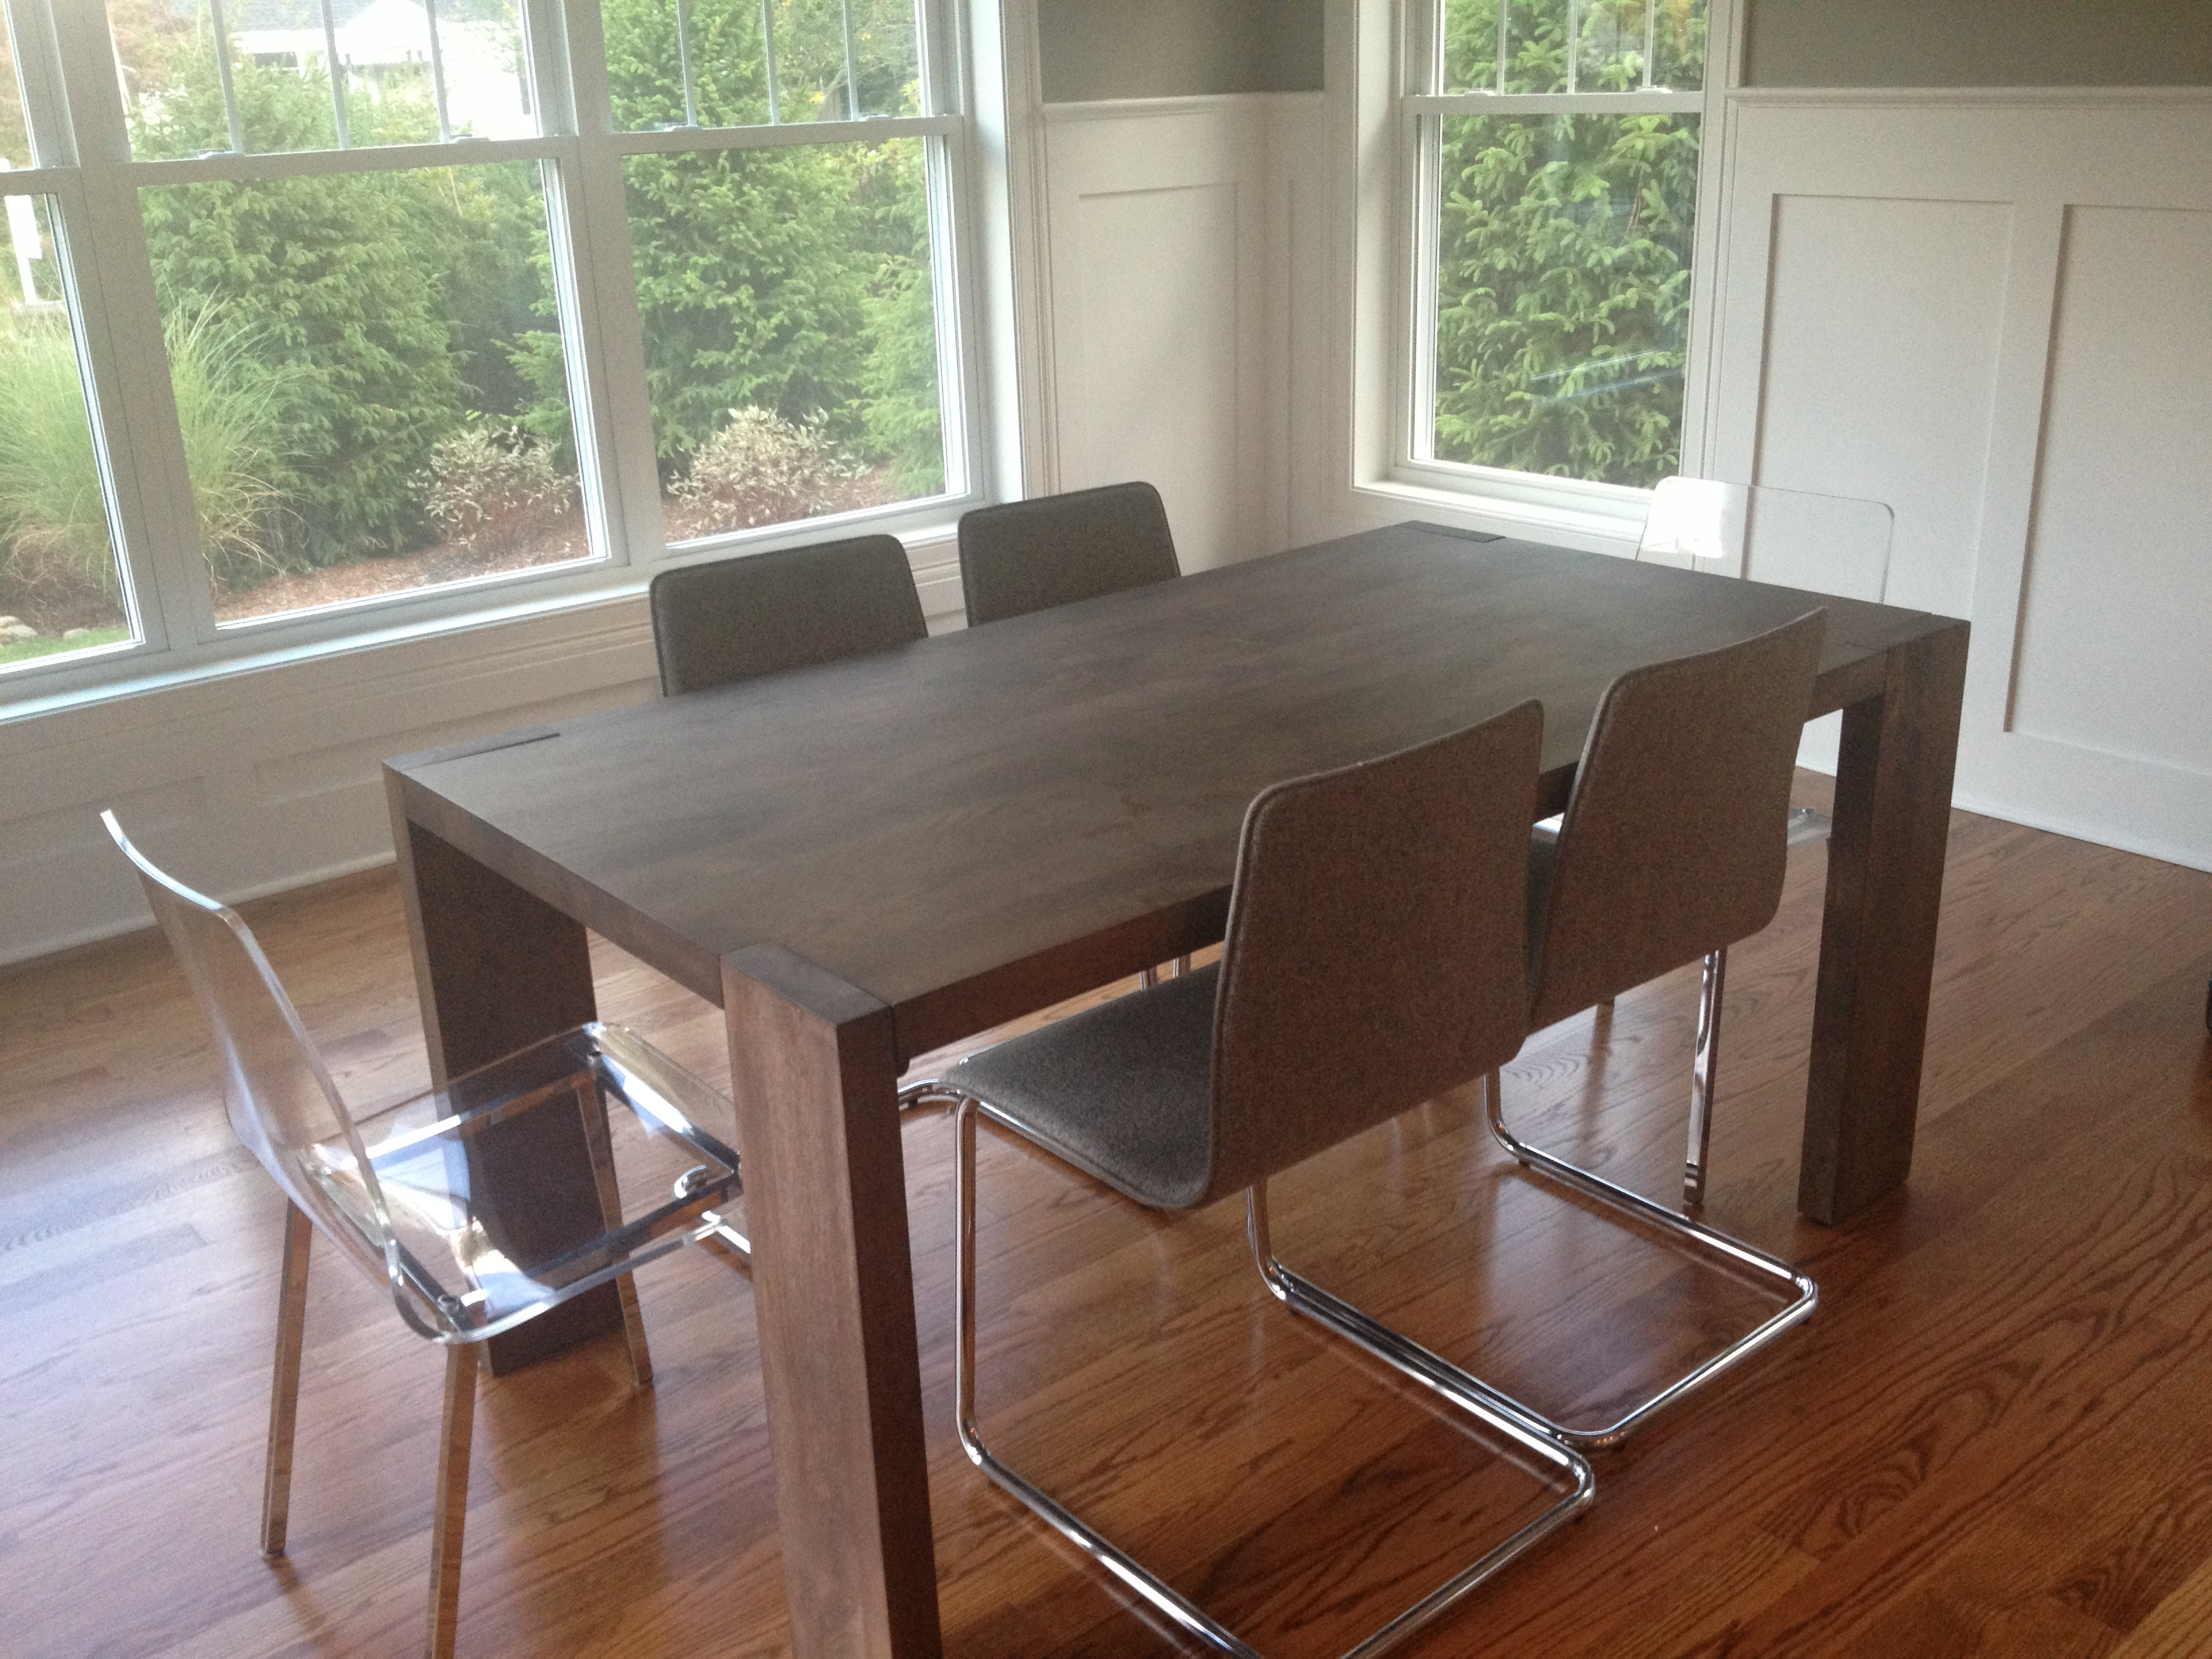 Cb2 Wood Dining Room Table And Chairs Fairfield Ct Patch